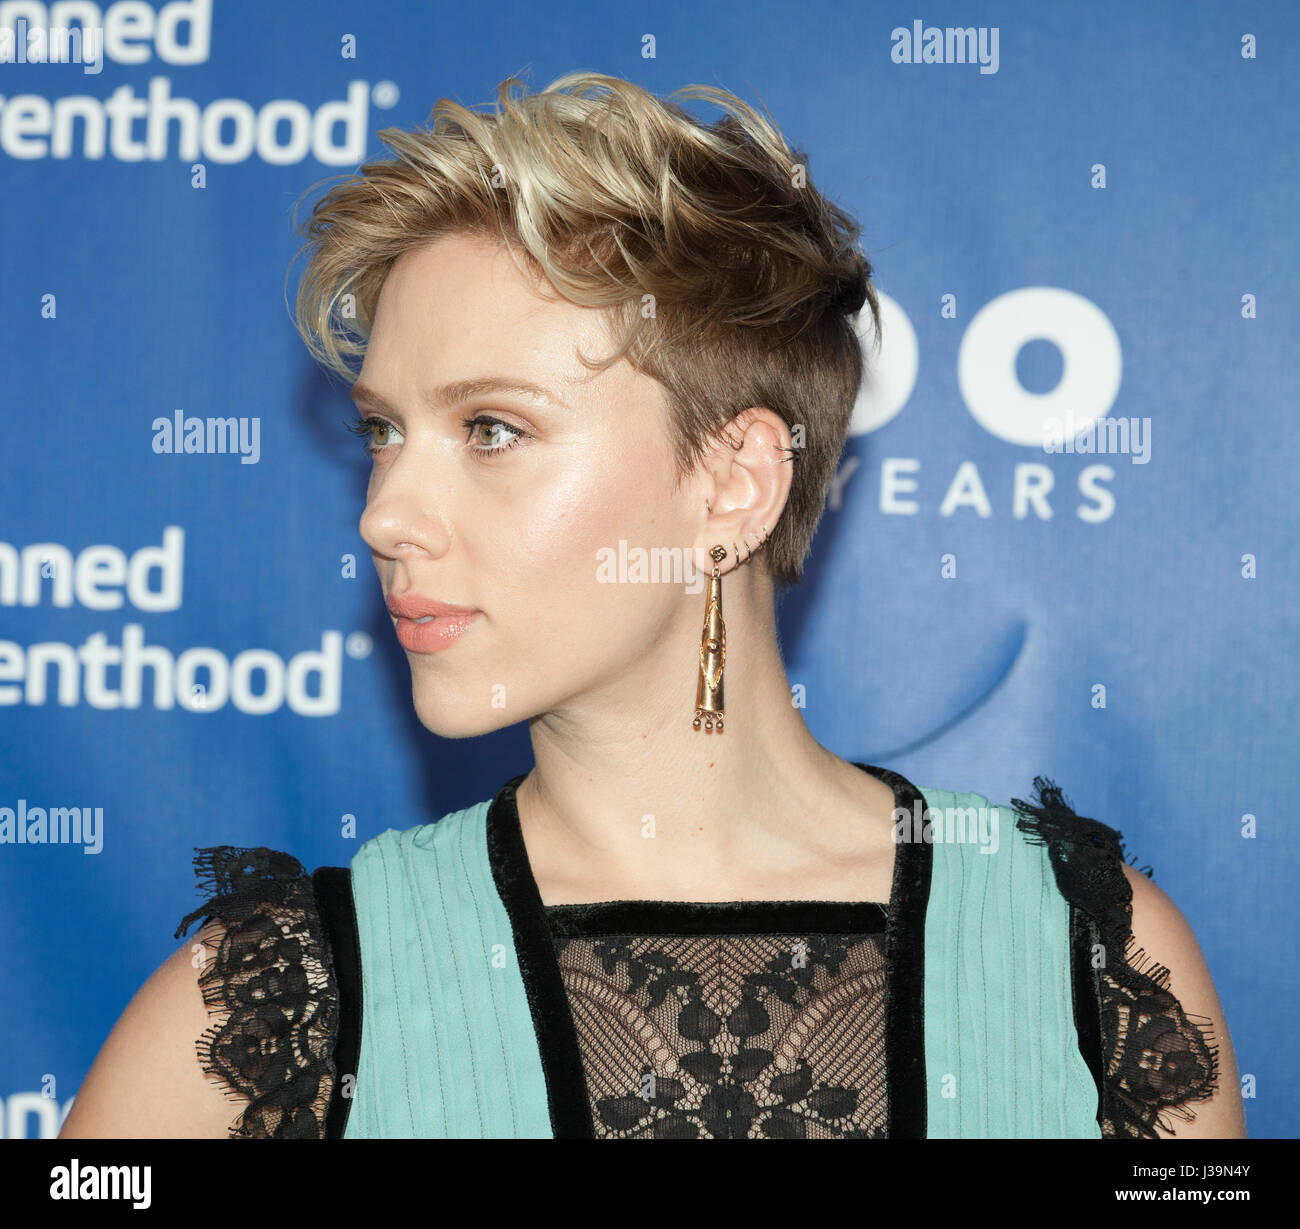 New York, NY USA - May 2, 2017: Scarlett Johansson attends the Planned Parenthood 100th Anniversary Gala at Pier Stock Foto